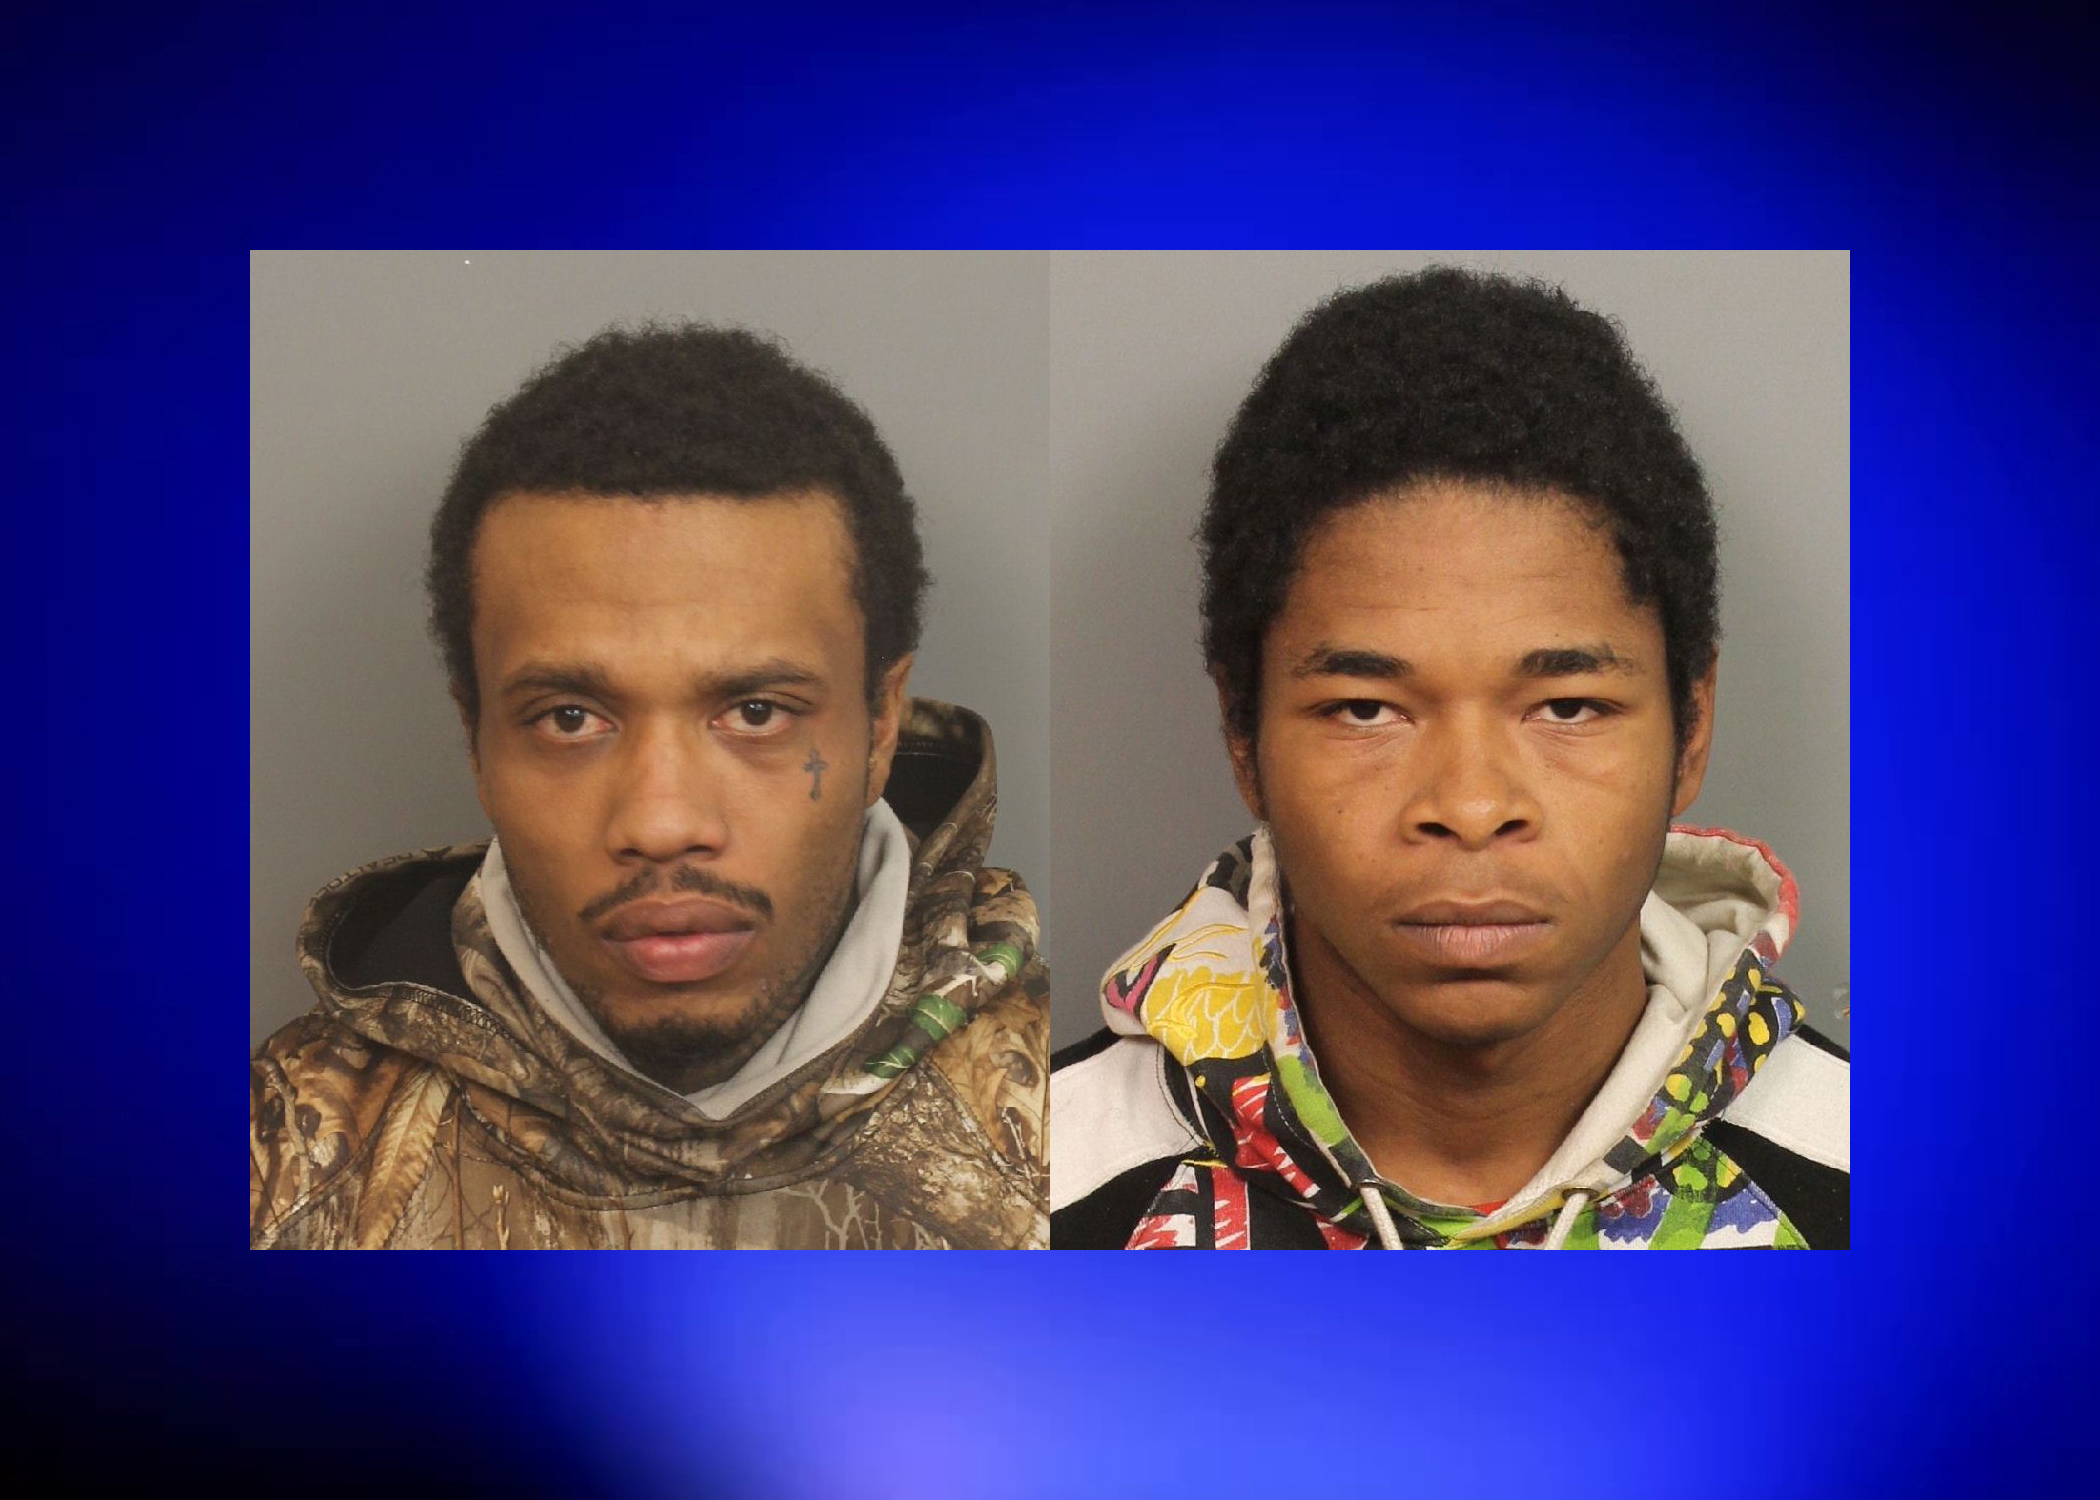 2 arrested after chase and crash on I-59 in east Jefferson County